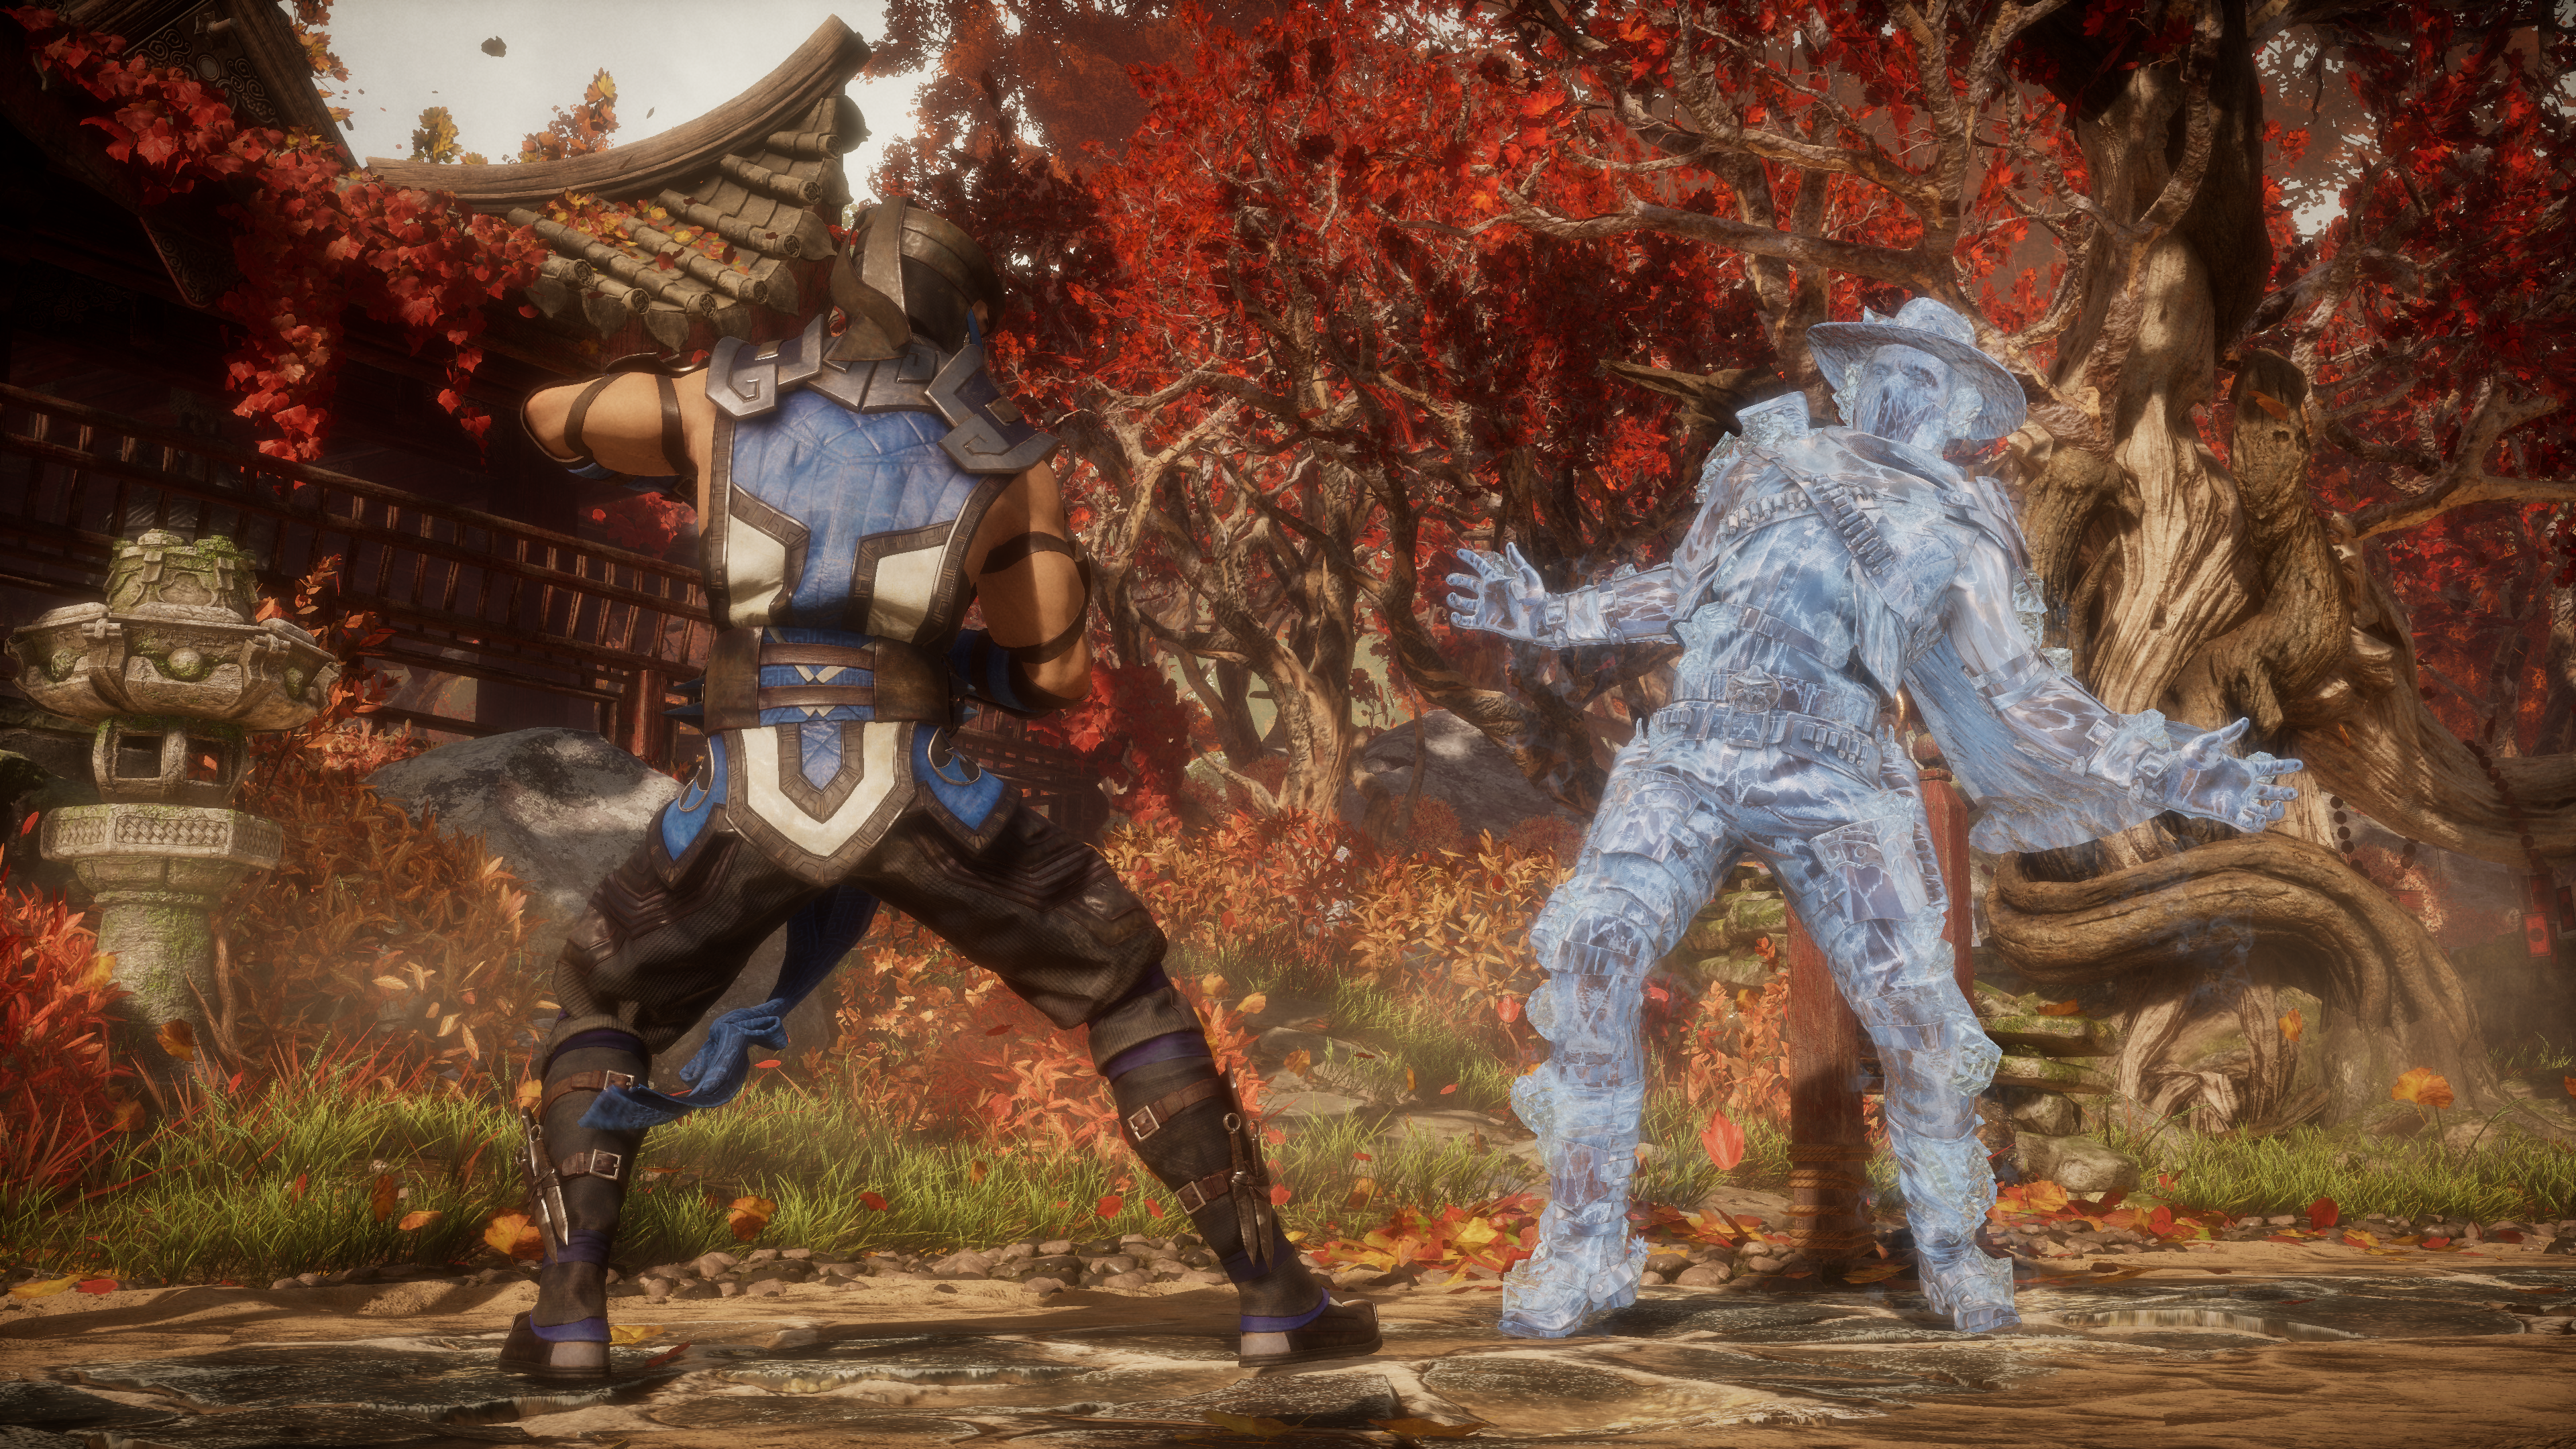 Mortal Kombat 11 Adds NVIDIA Ansel and Highlights On PC